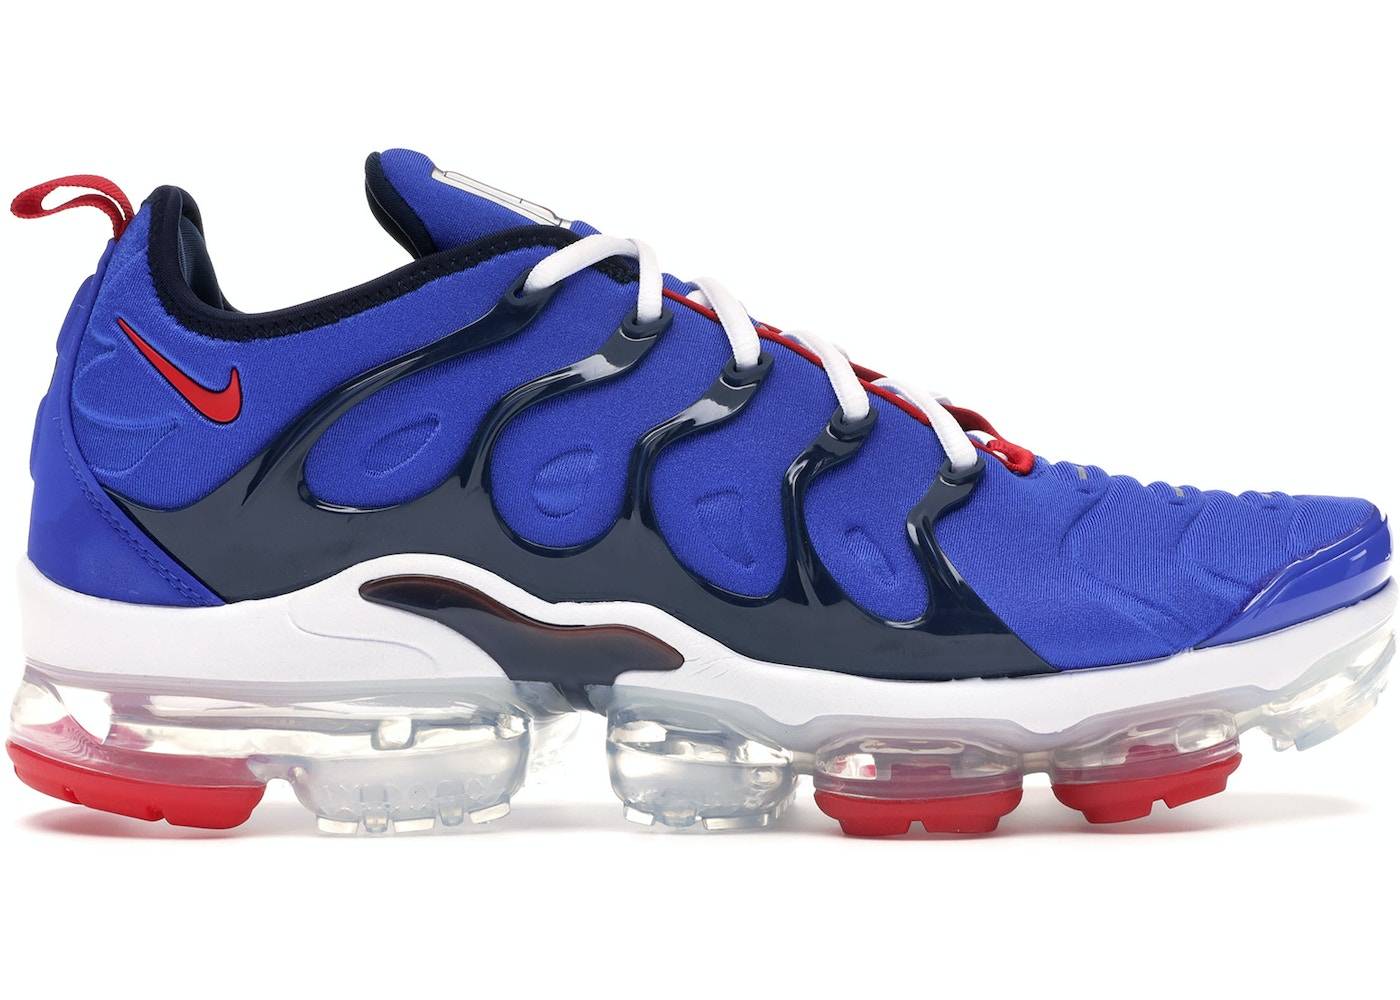 new arrival 0da60 8cfda Air VaporMax Plus Racer Blue University Red